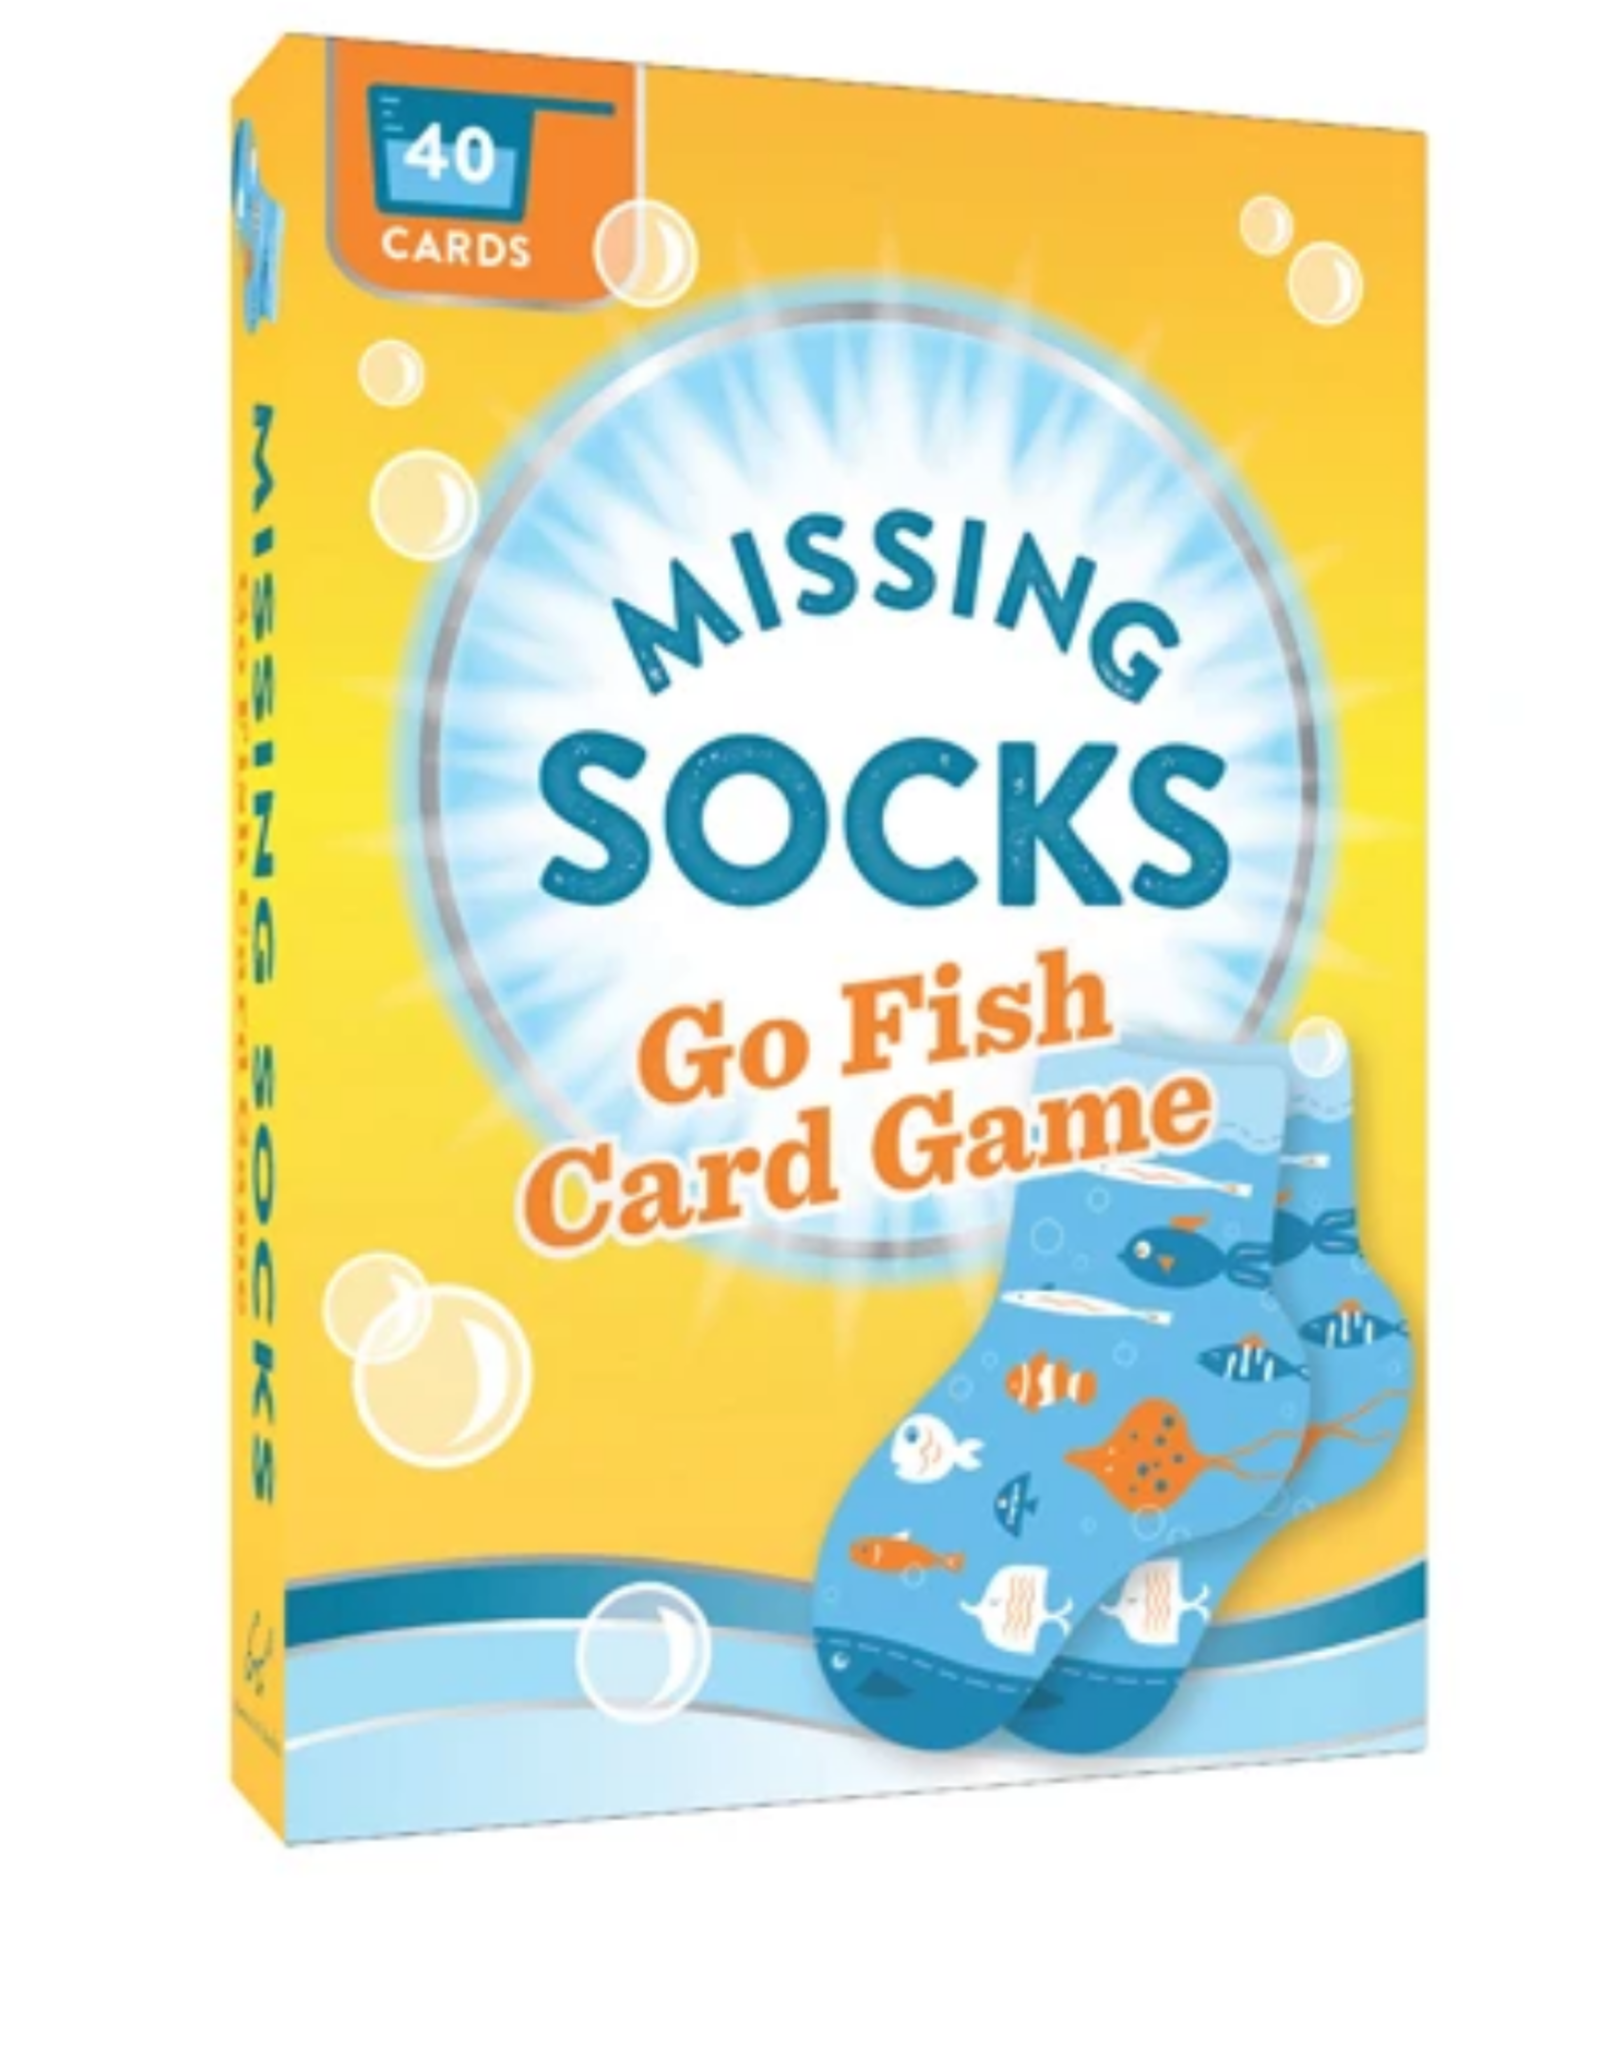 Missing Socks Go Fish Card Game